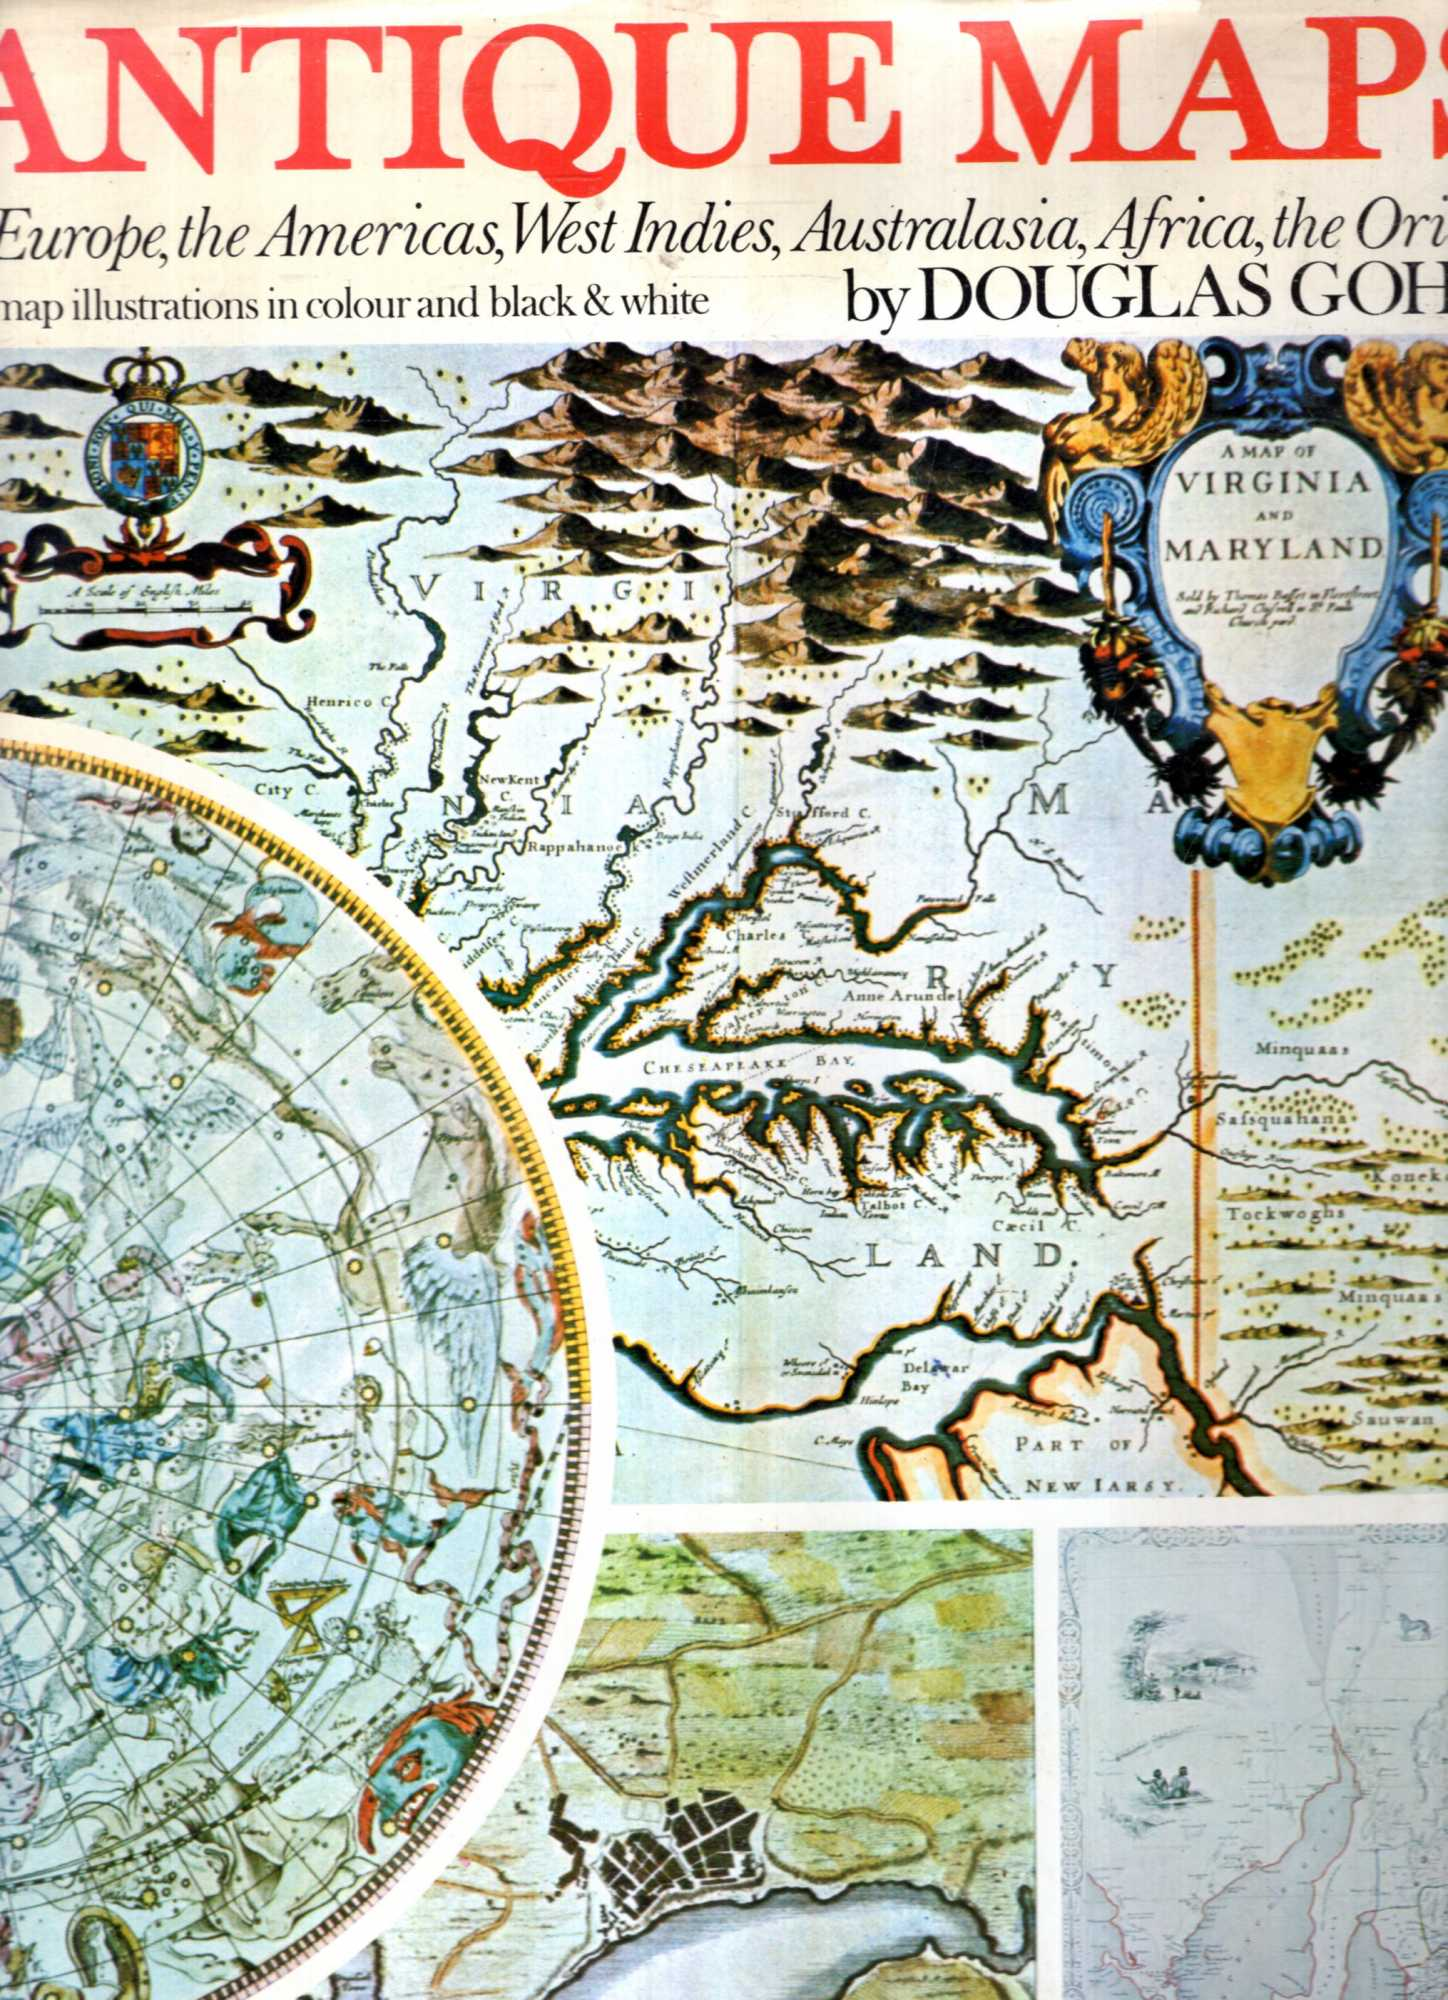 Image for Antique maps of Europe, the Americas, West Indies, Australasia, Africa, the Orient